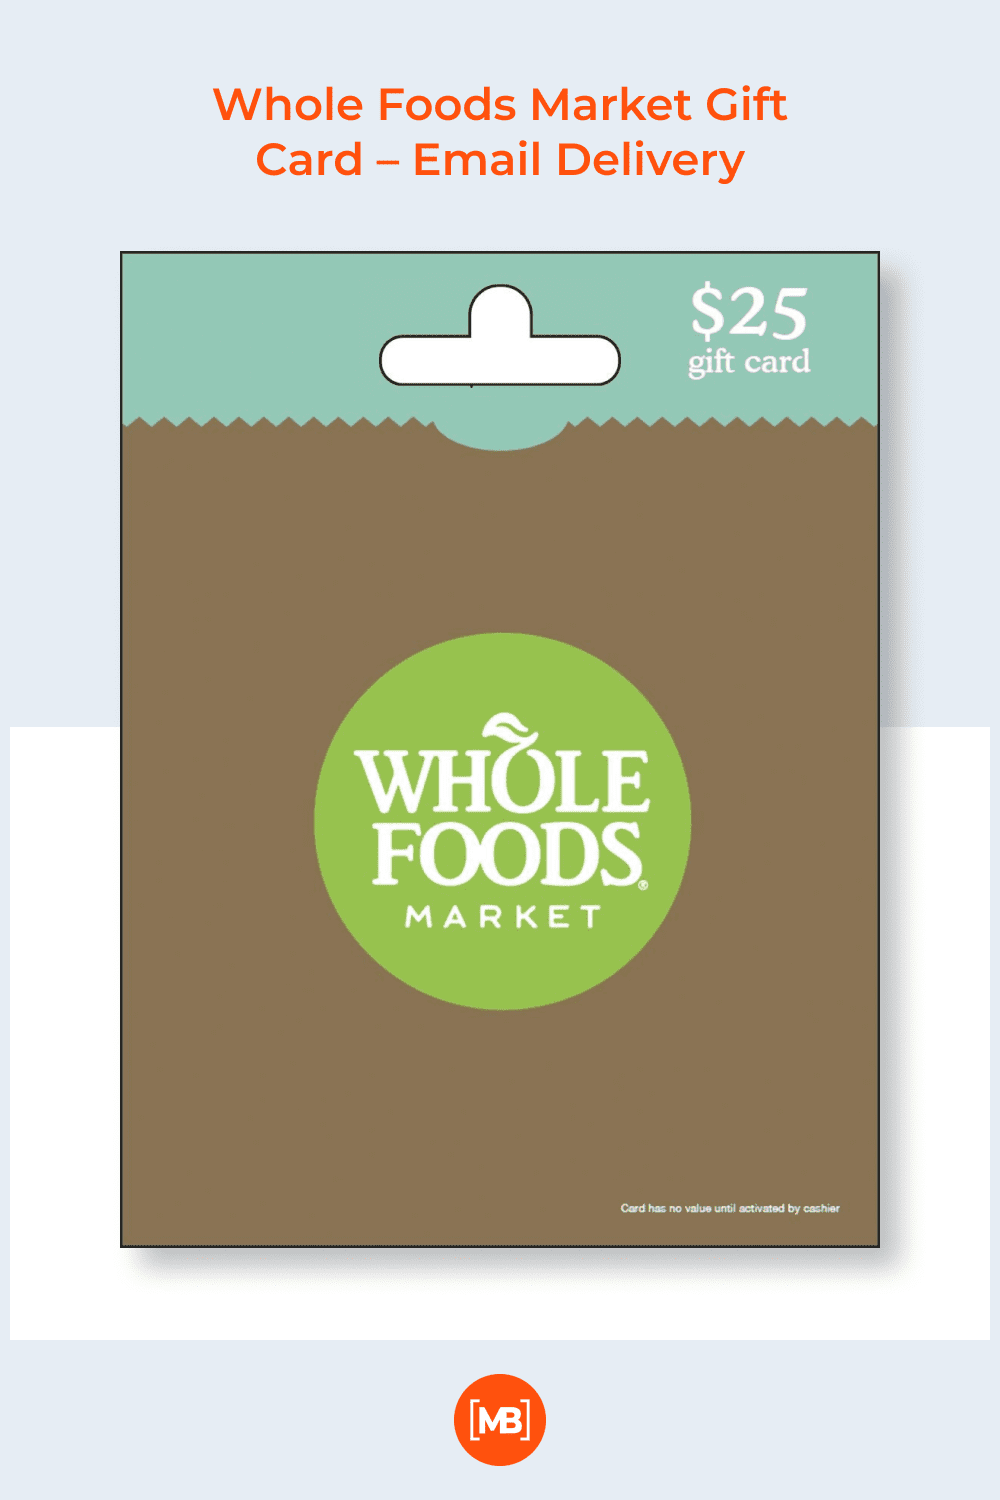 Whole foods market gift card.